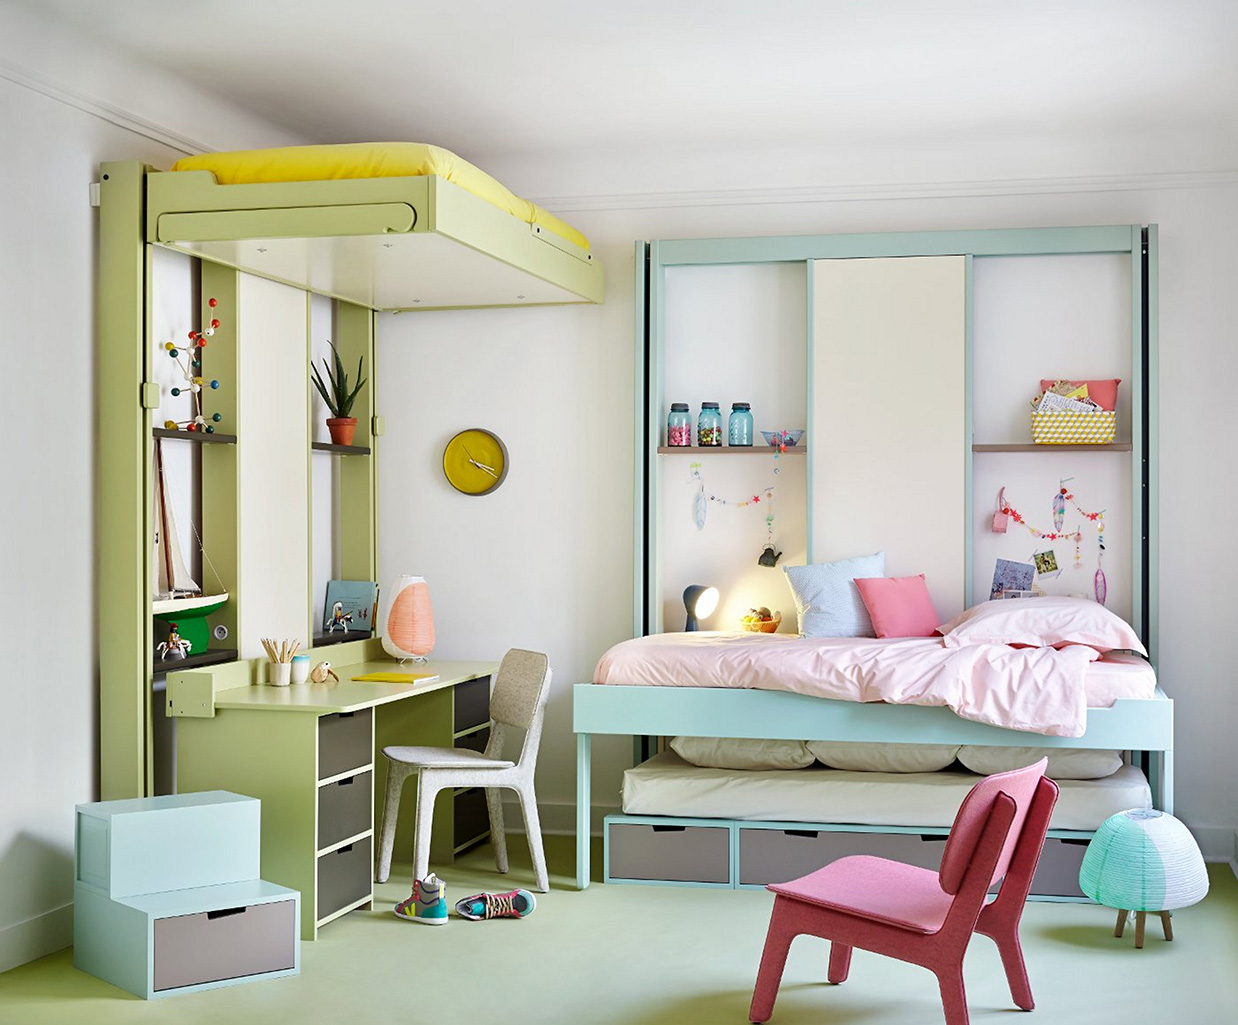 Lits escamotables champ libre for Image chambre enfant